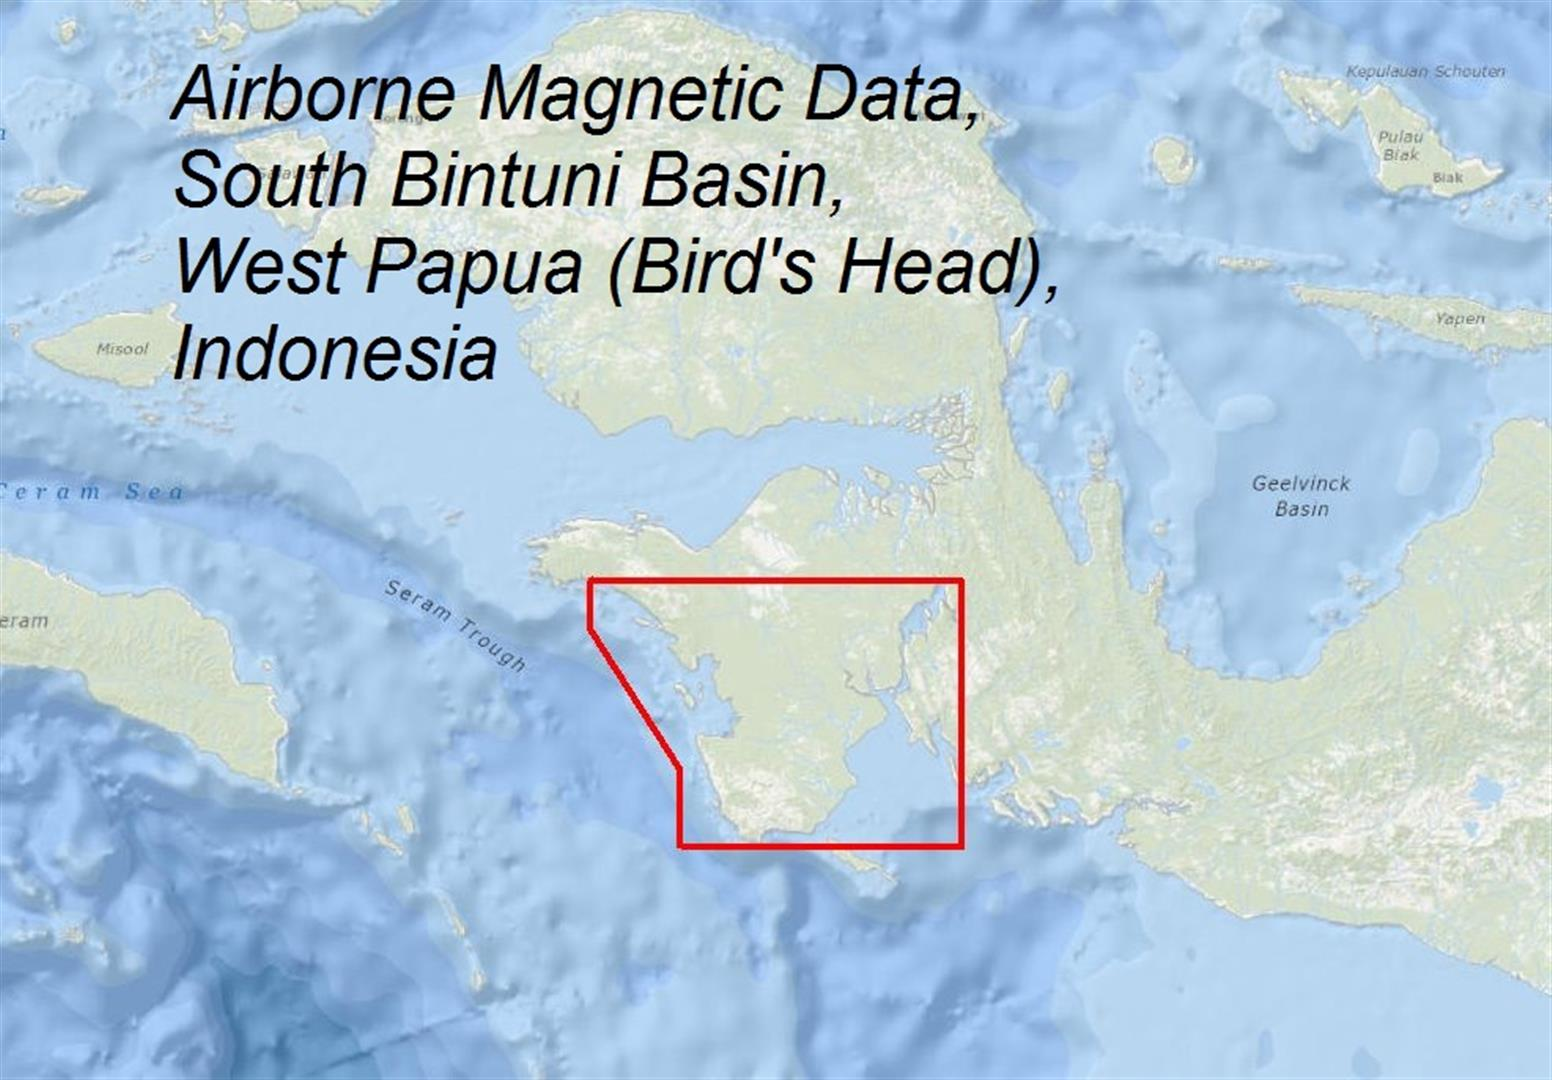 Multi-client Airborne Magnetic Data, South Bintuni Basin, West Papua (Bird